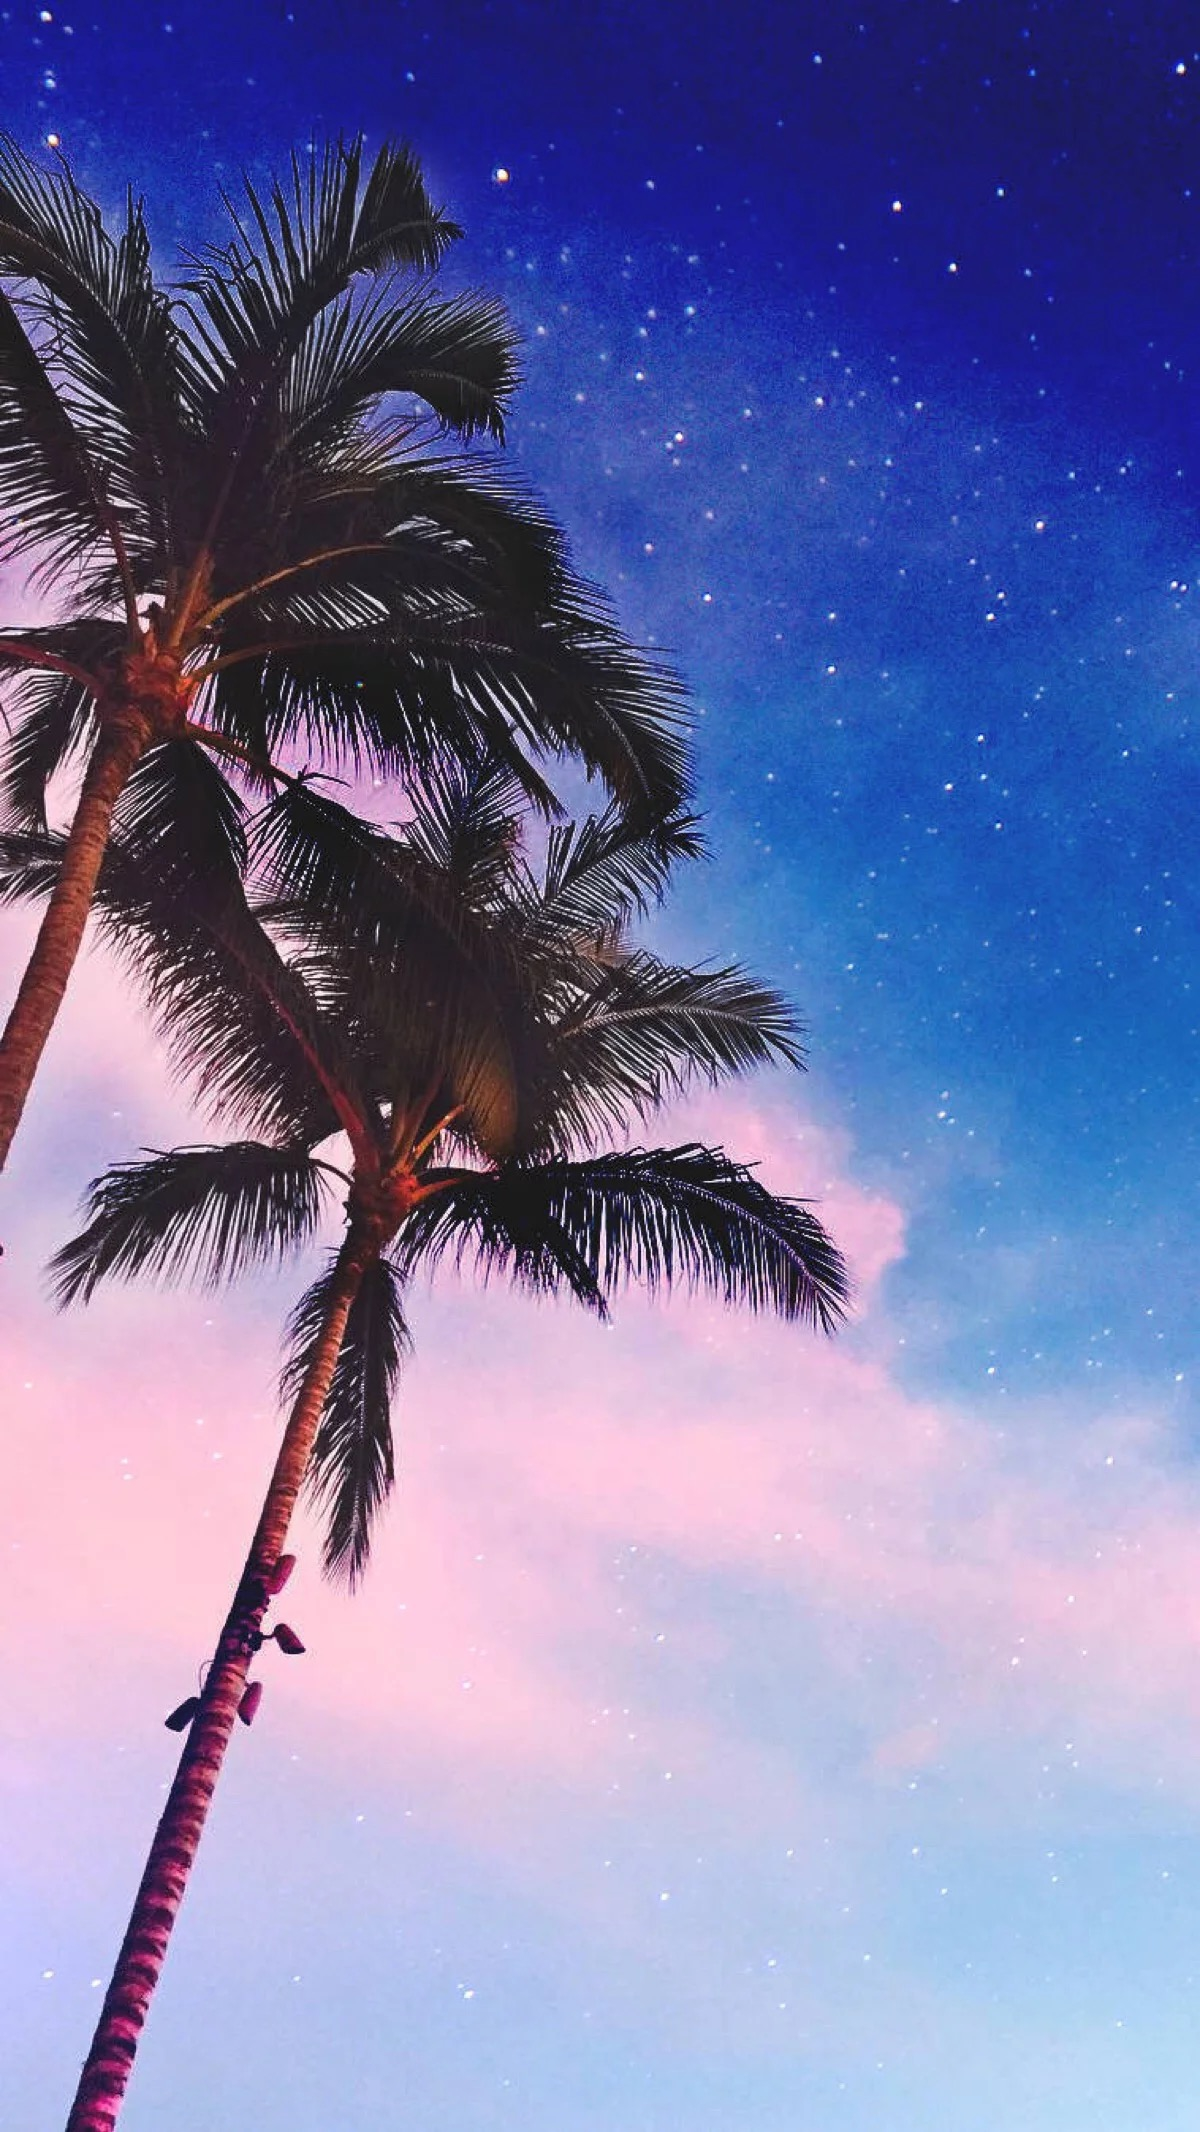 Palm Trees iPhone Wallpaper iphoneswallpapers com